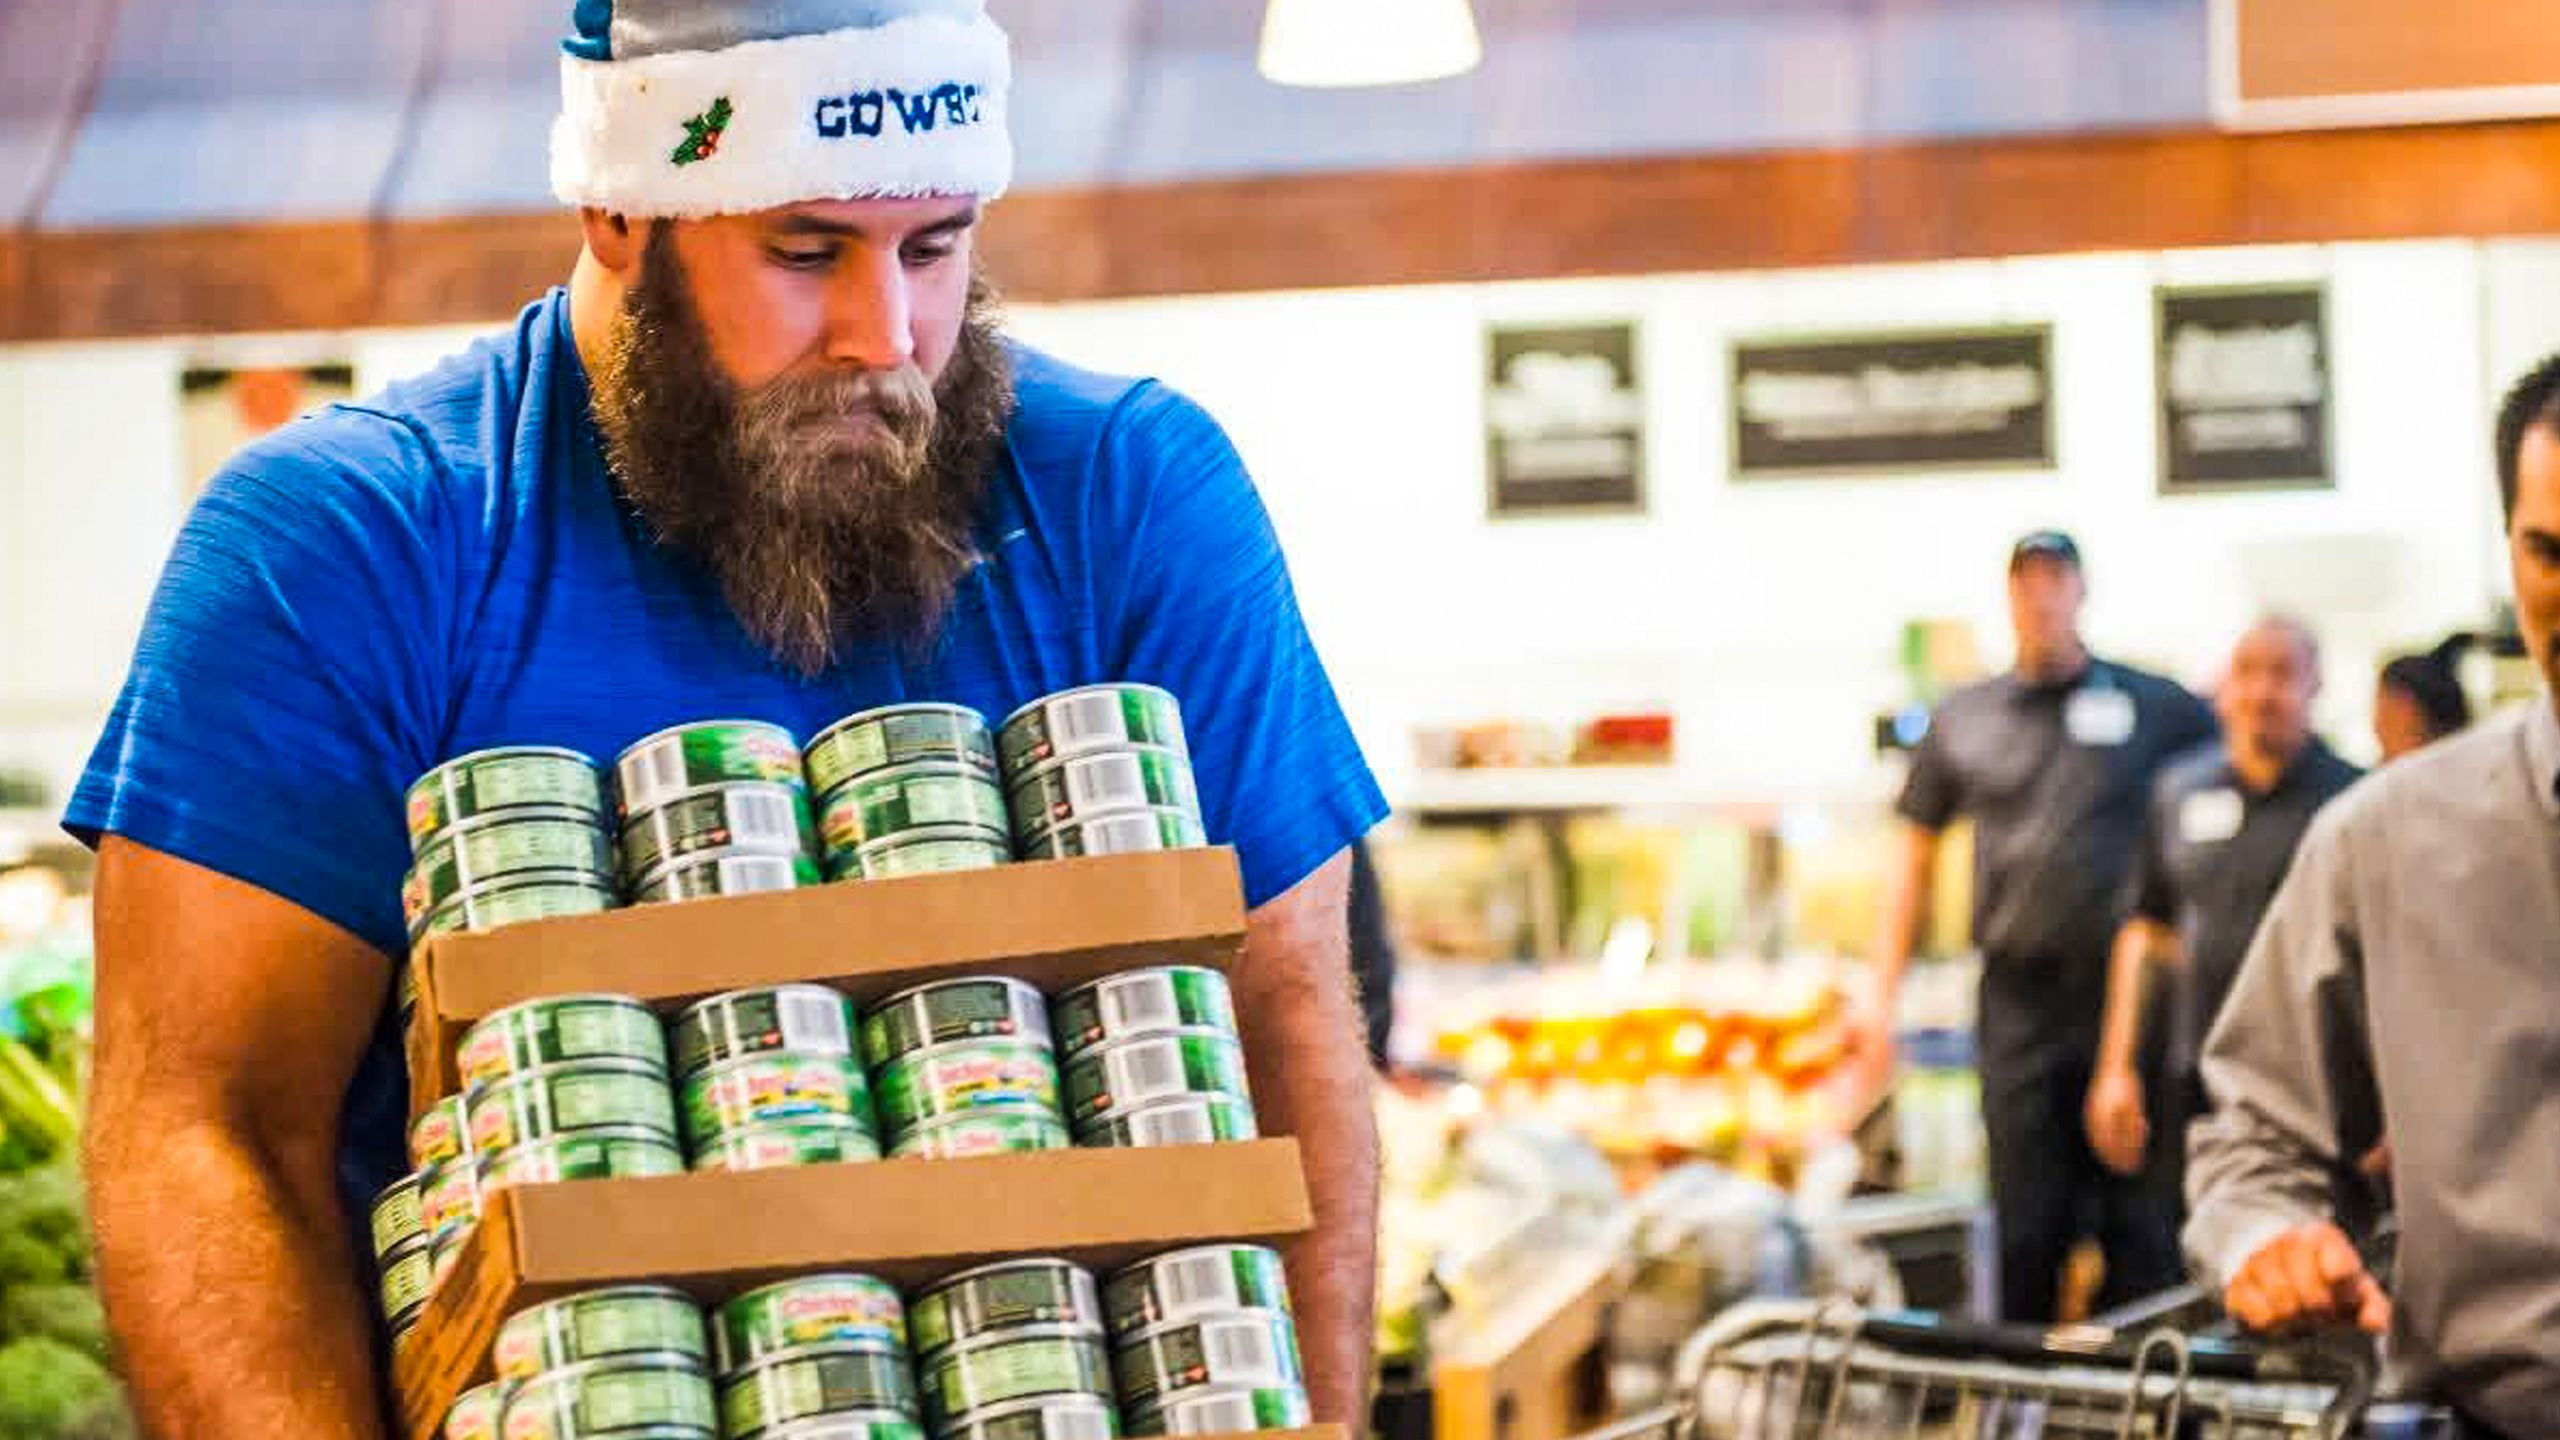 Travis Frederick's Blocking Out Hunger Foundation